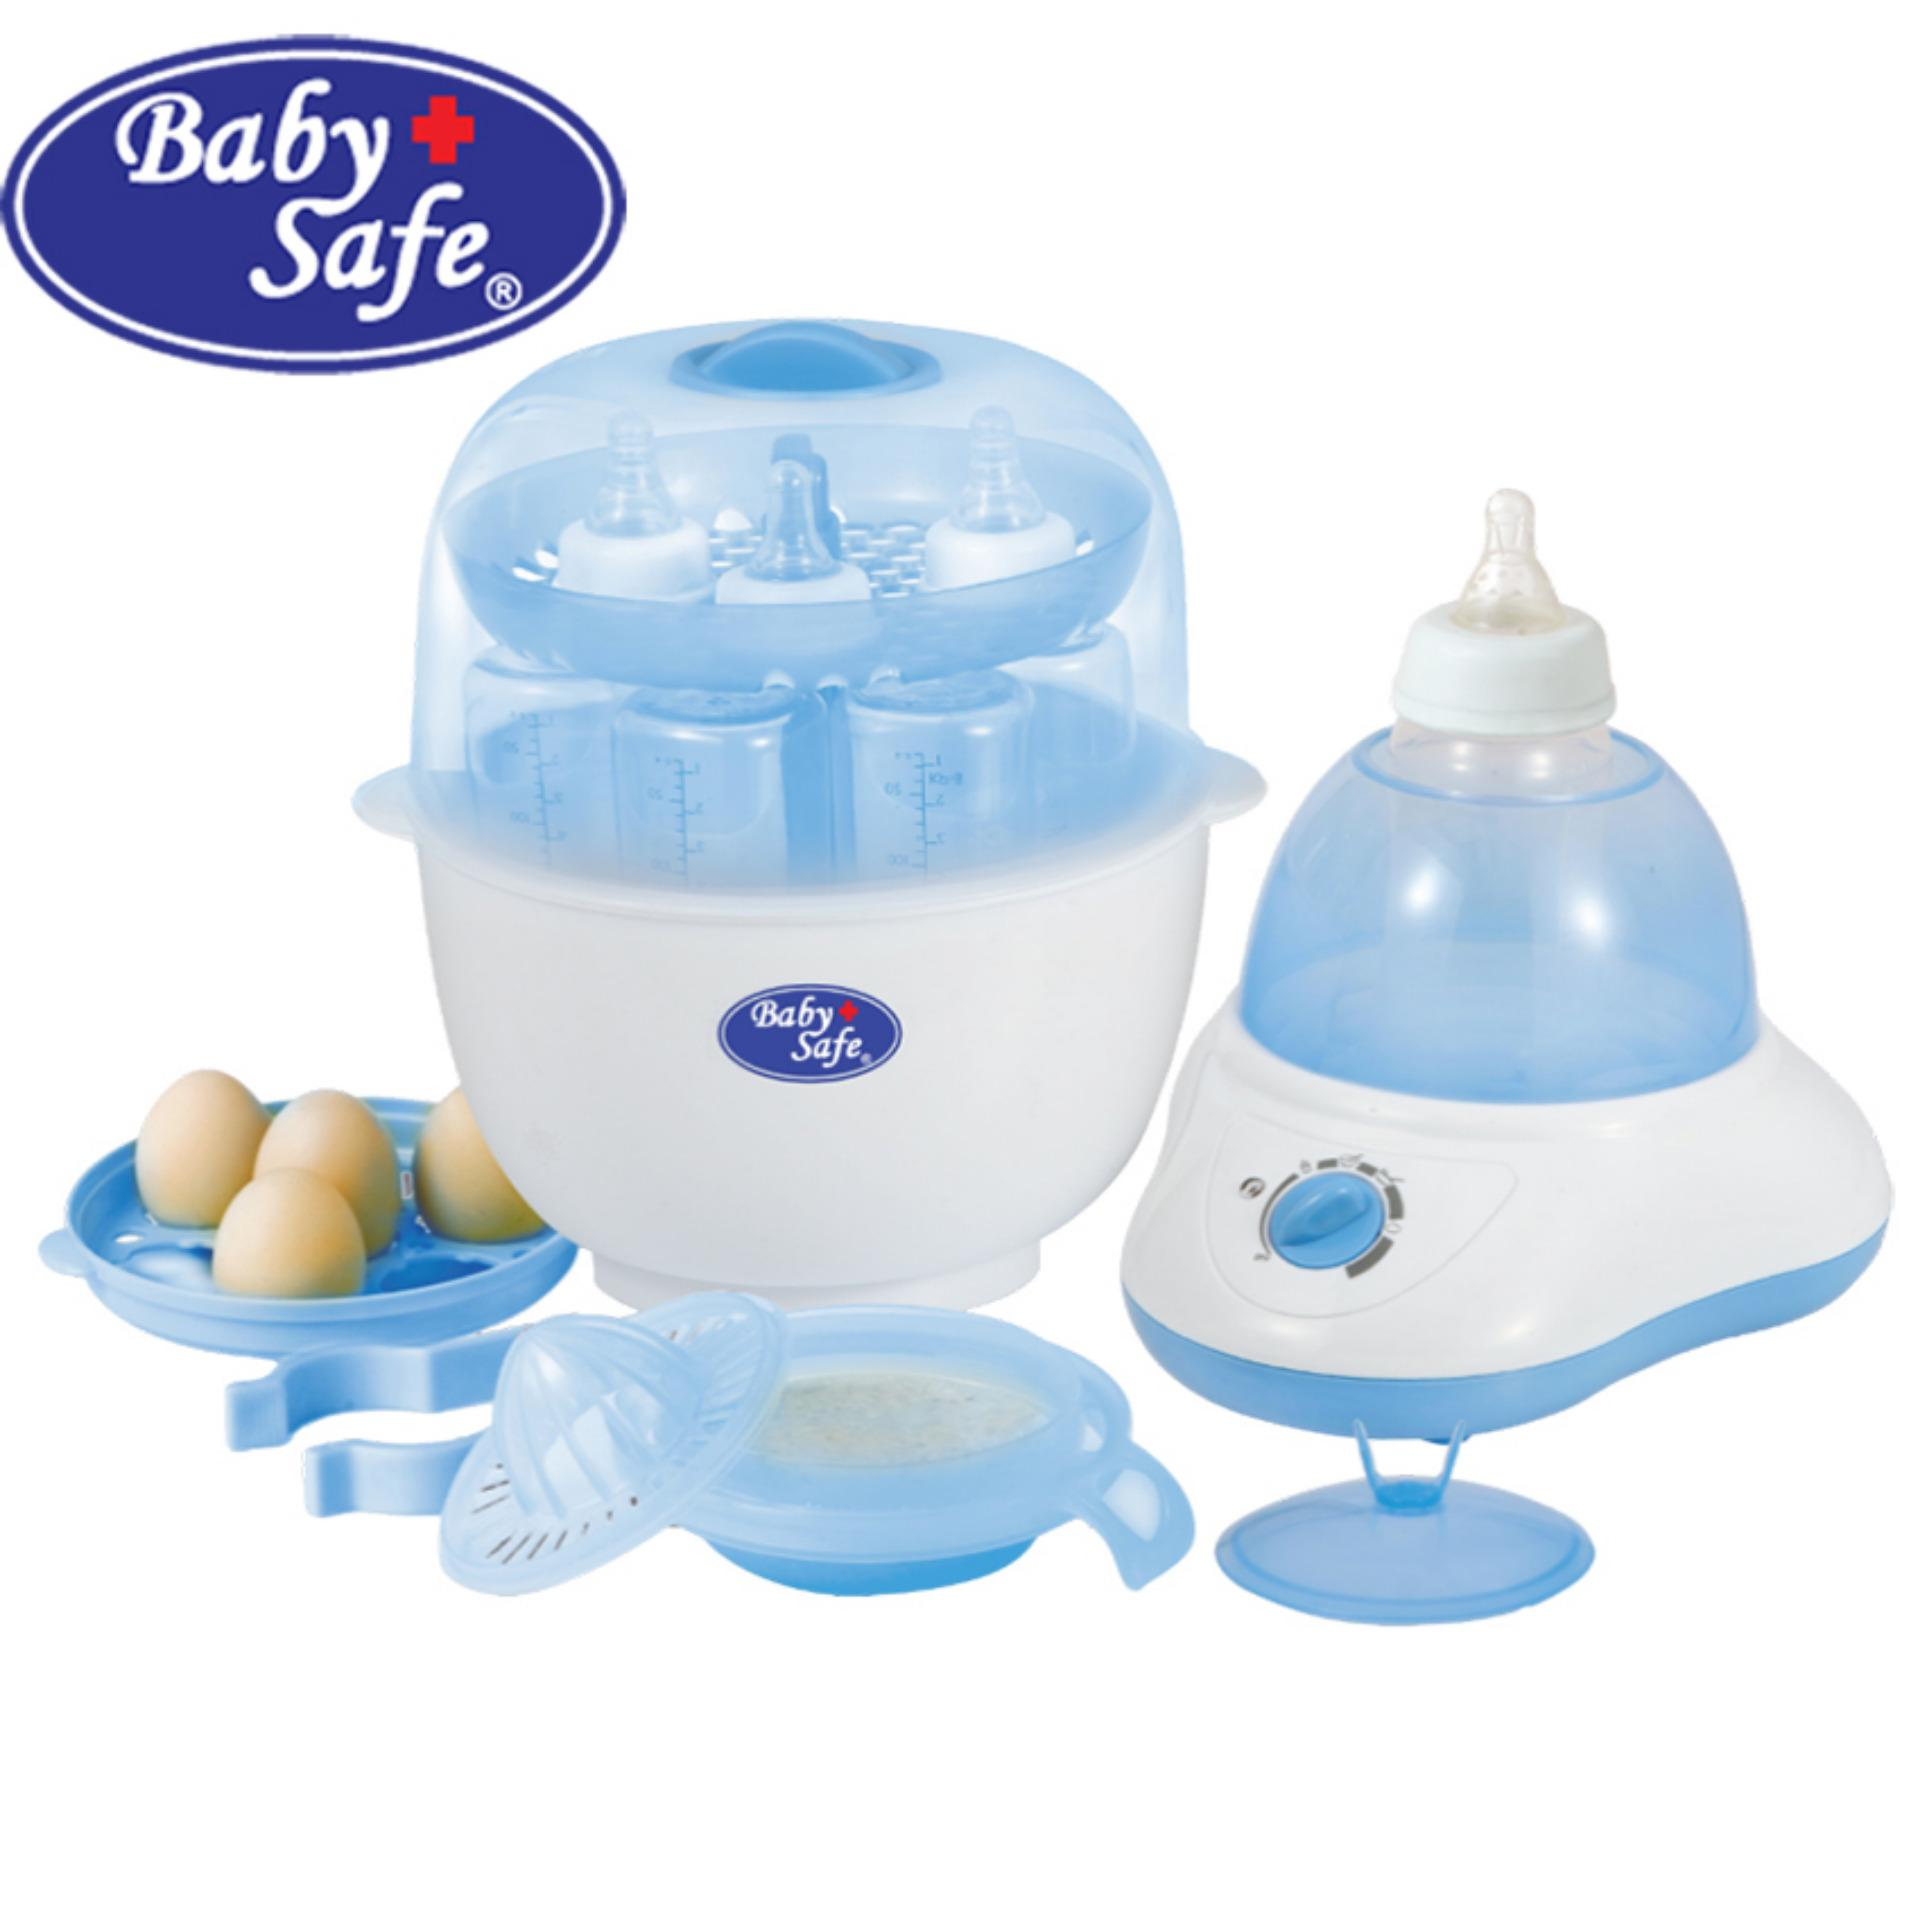 Beli Baby Safe Lb 309 Multifunction Bottle Sterilizer Baby Safe Murah